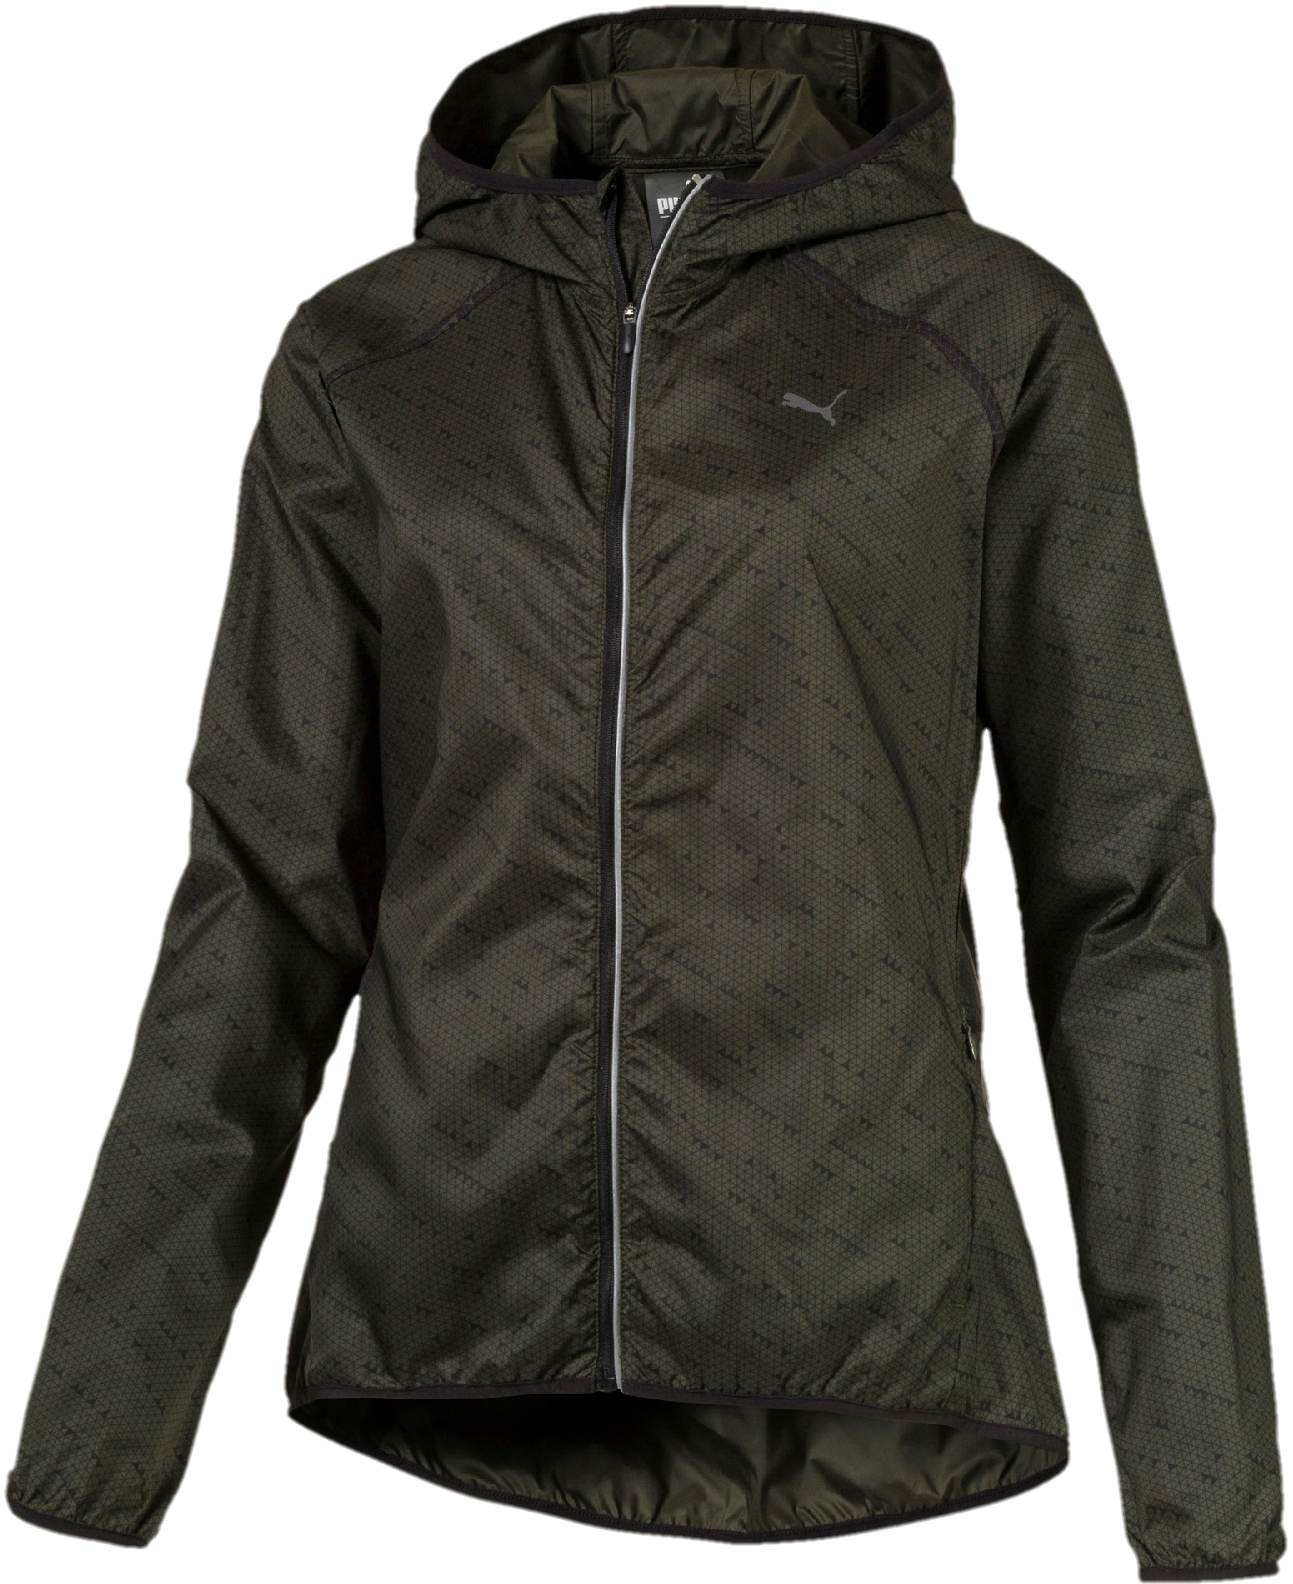 714e85207e Puma-Women-s-Last-Lap-Graphic-Run-Jacket-Internal-Black-AW18-51666701XS.jpg